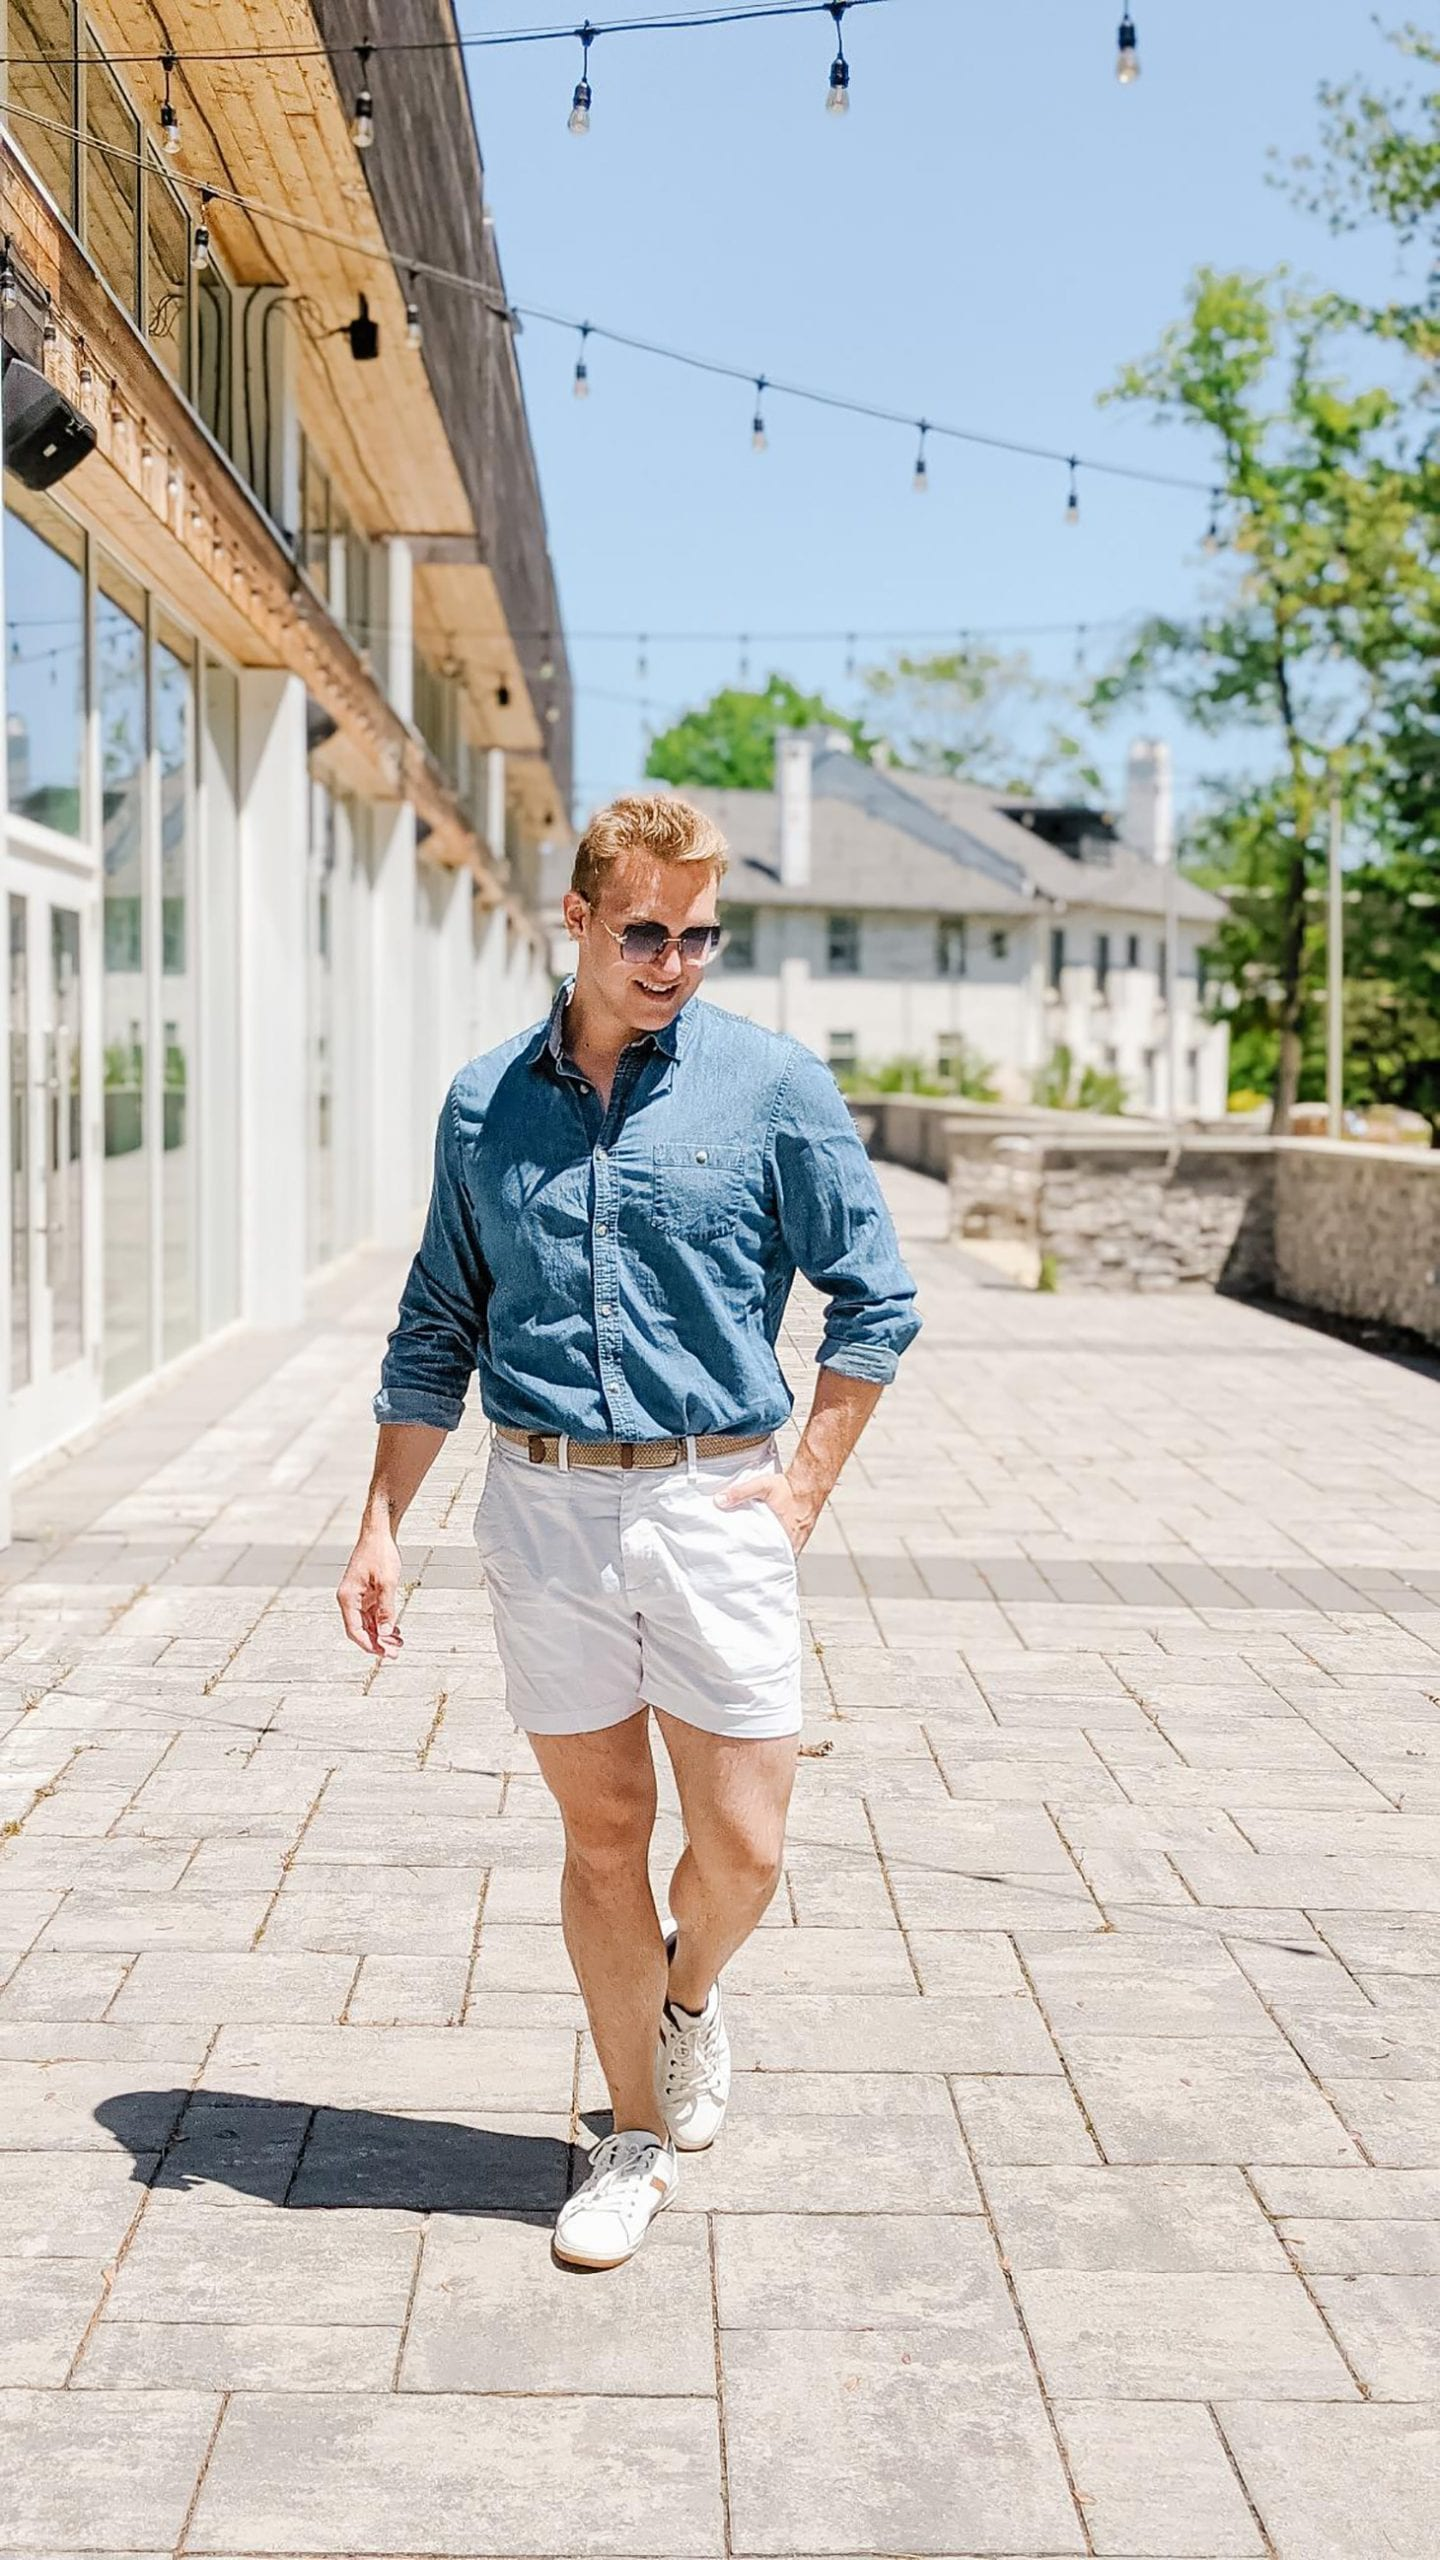 Christopher Allen's outside a white building wearing one of his Favourite Summer Fits.